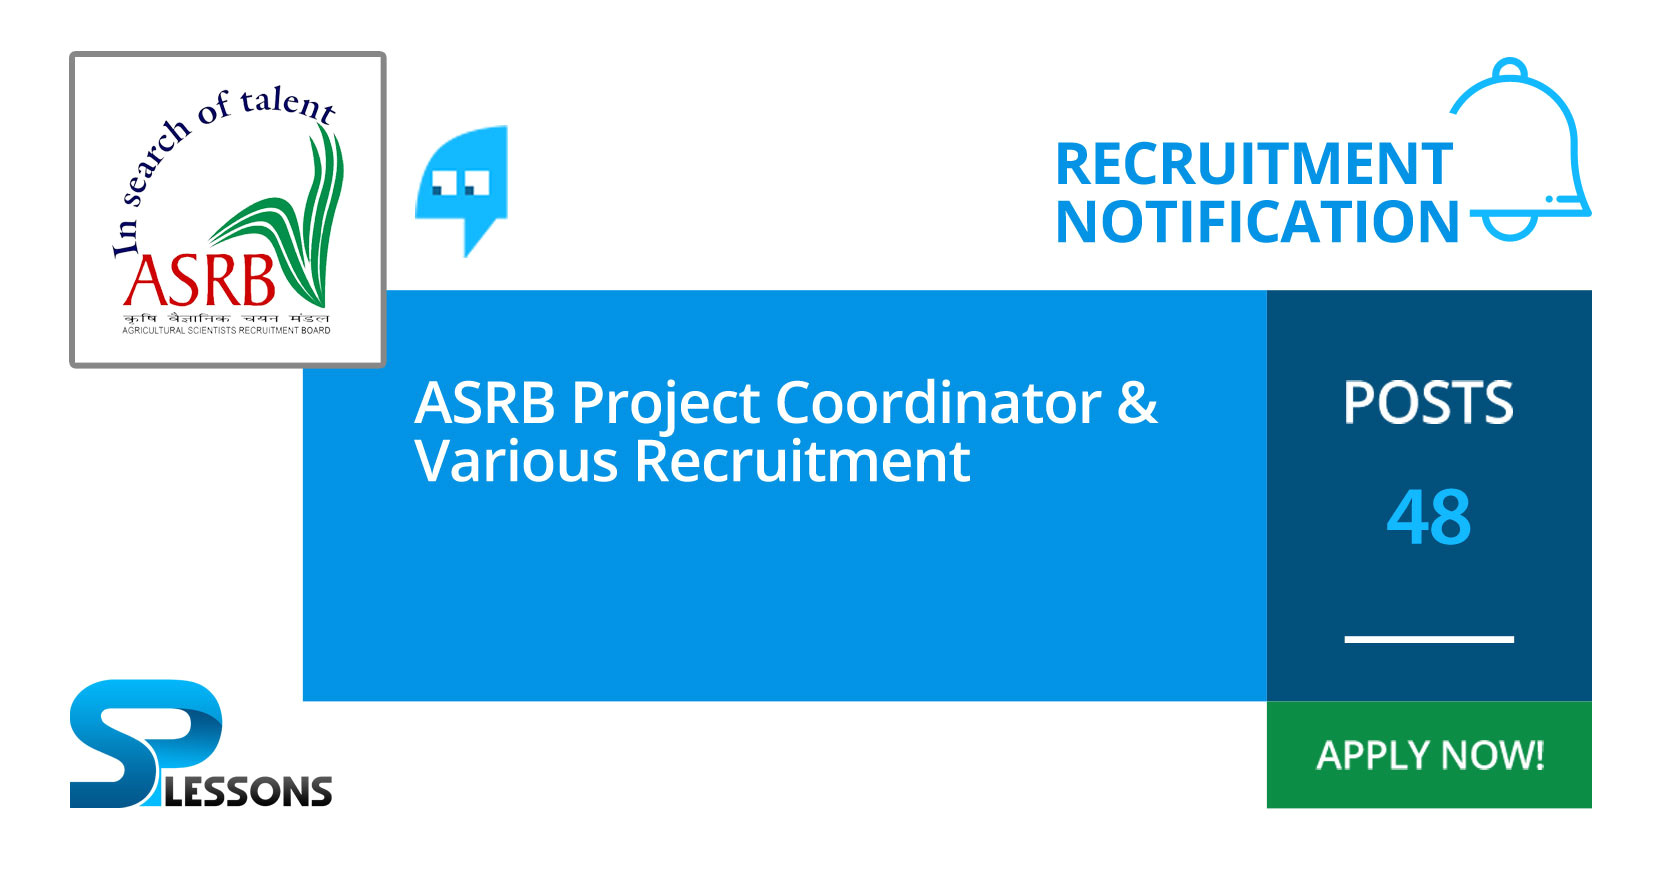 asrb project coordinator and various recruitment 1 jpg